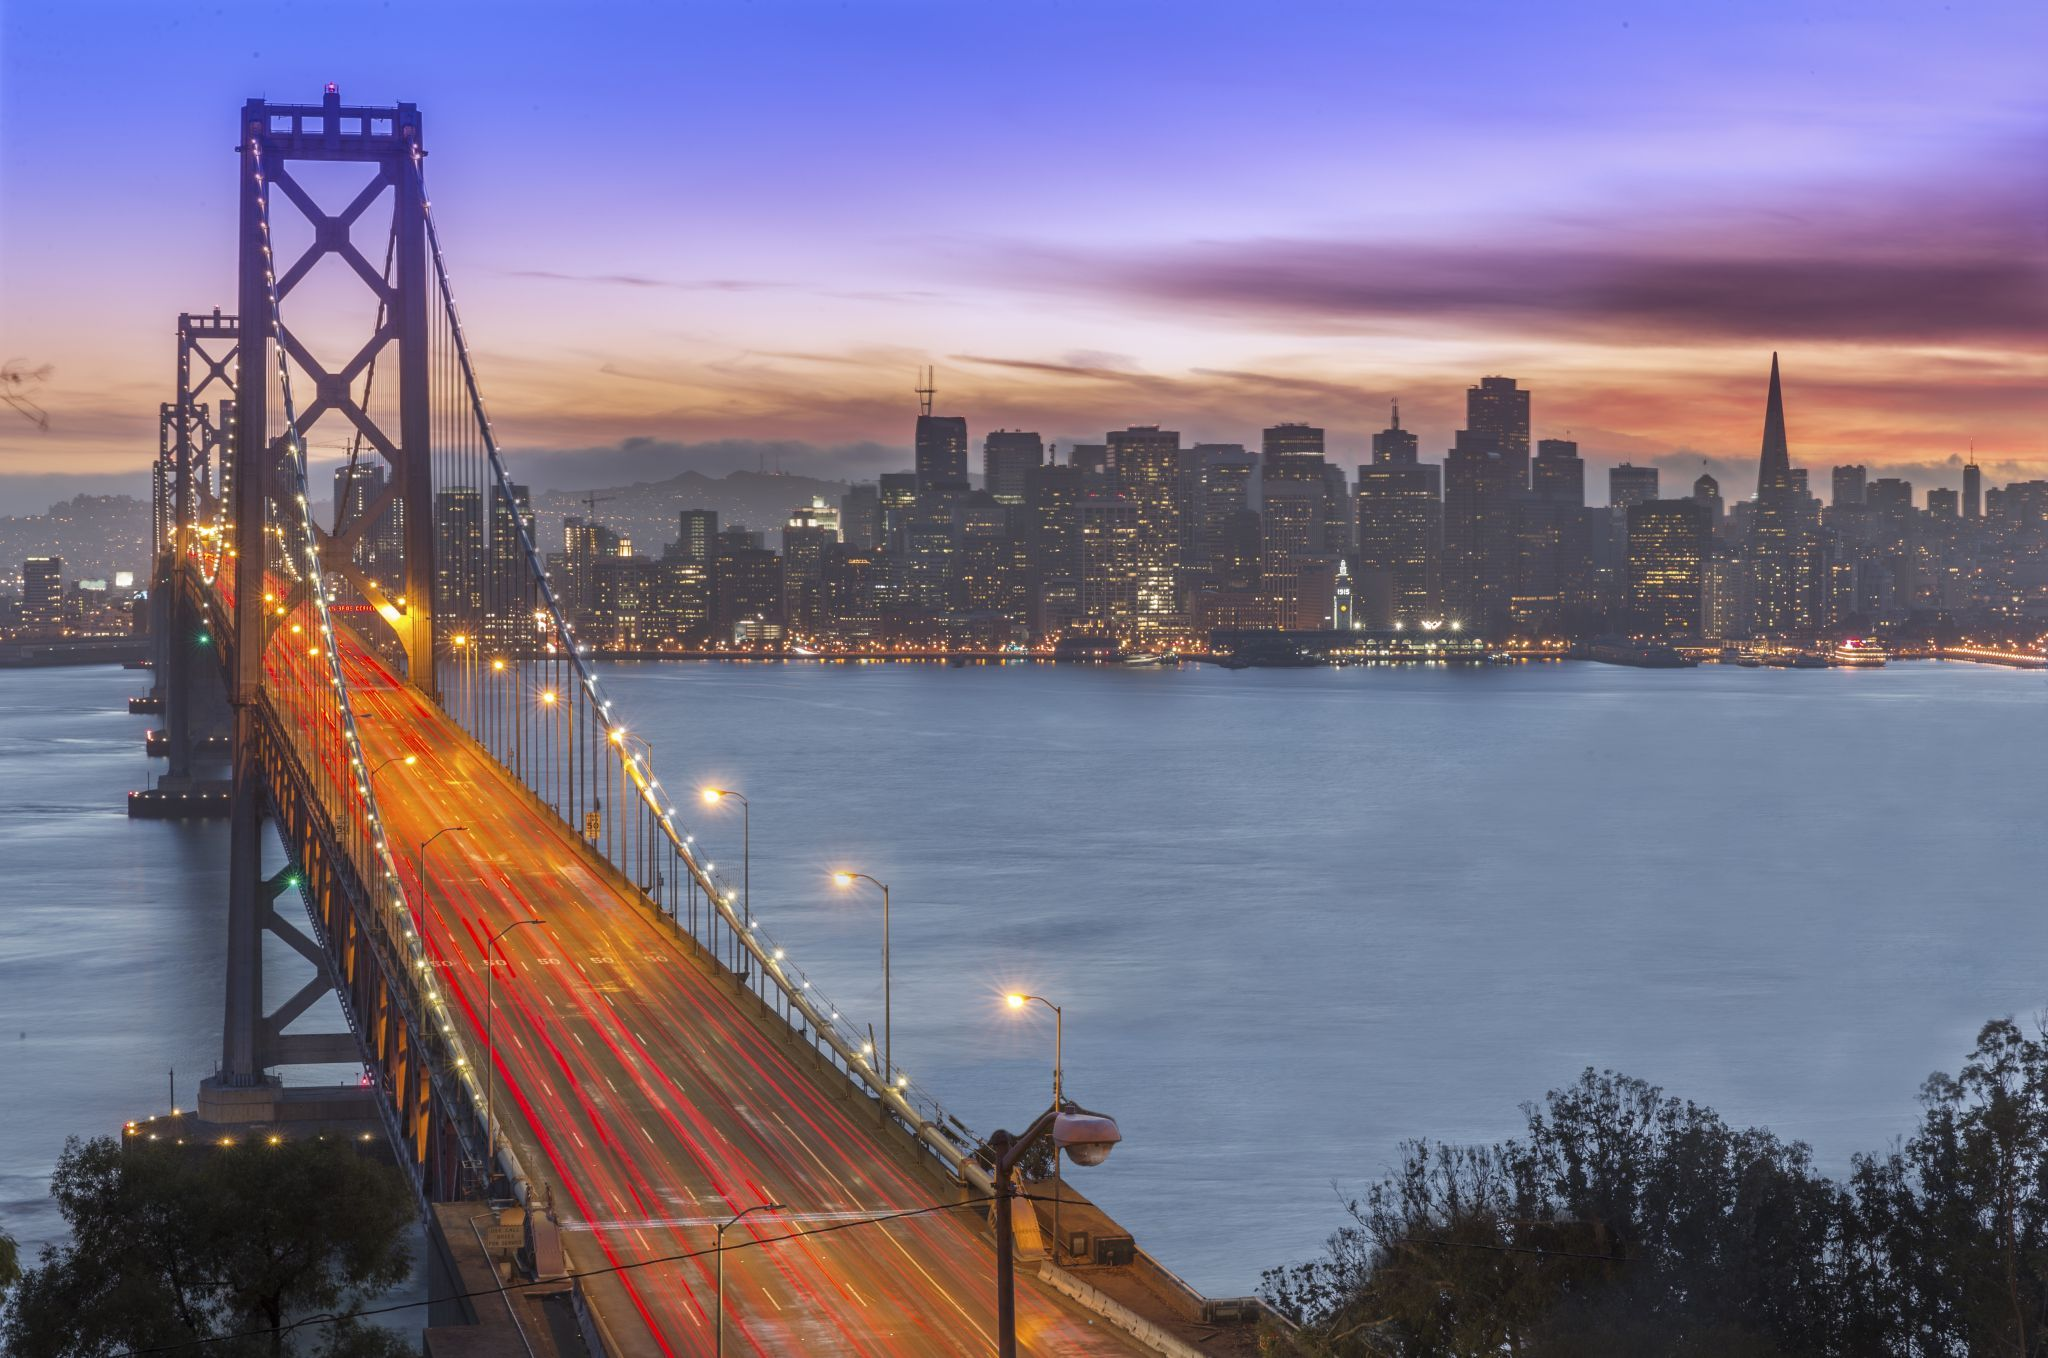 Pricey San Francisco apartments can exceed annual pay of